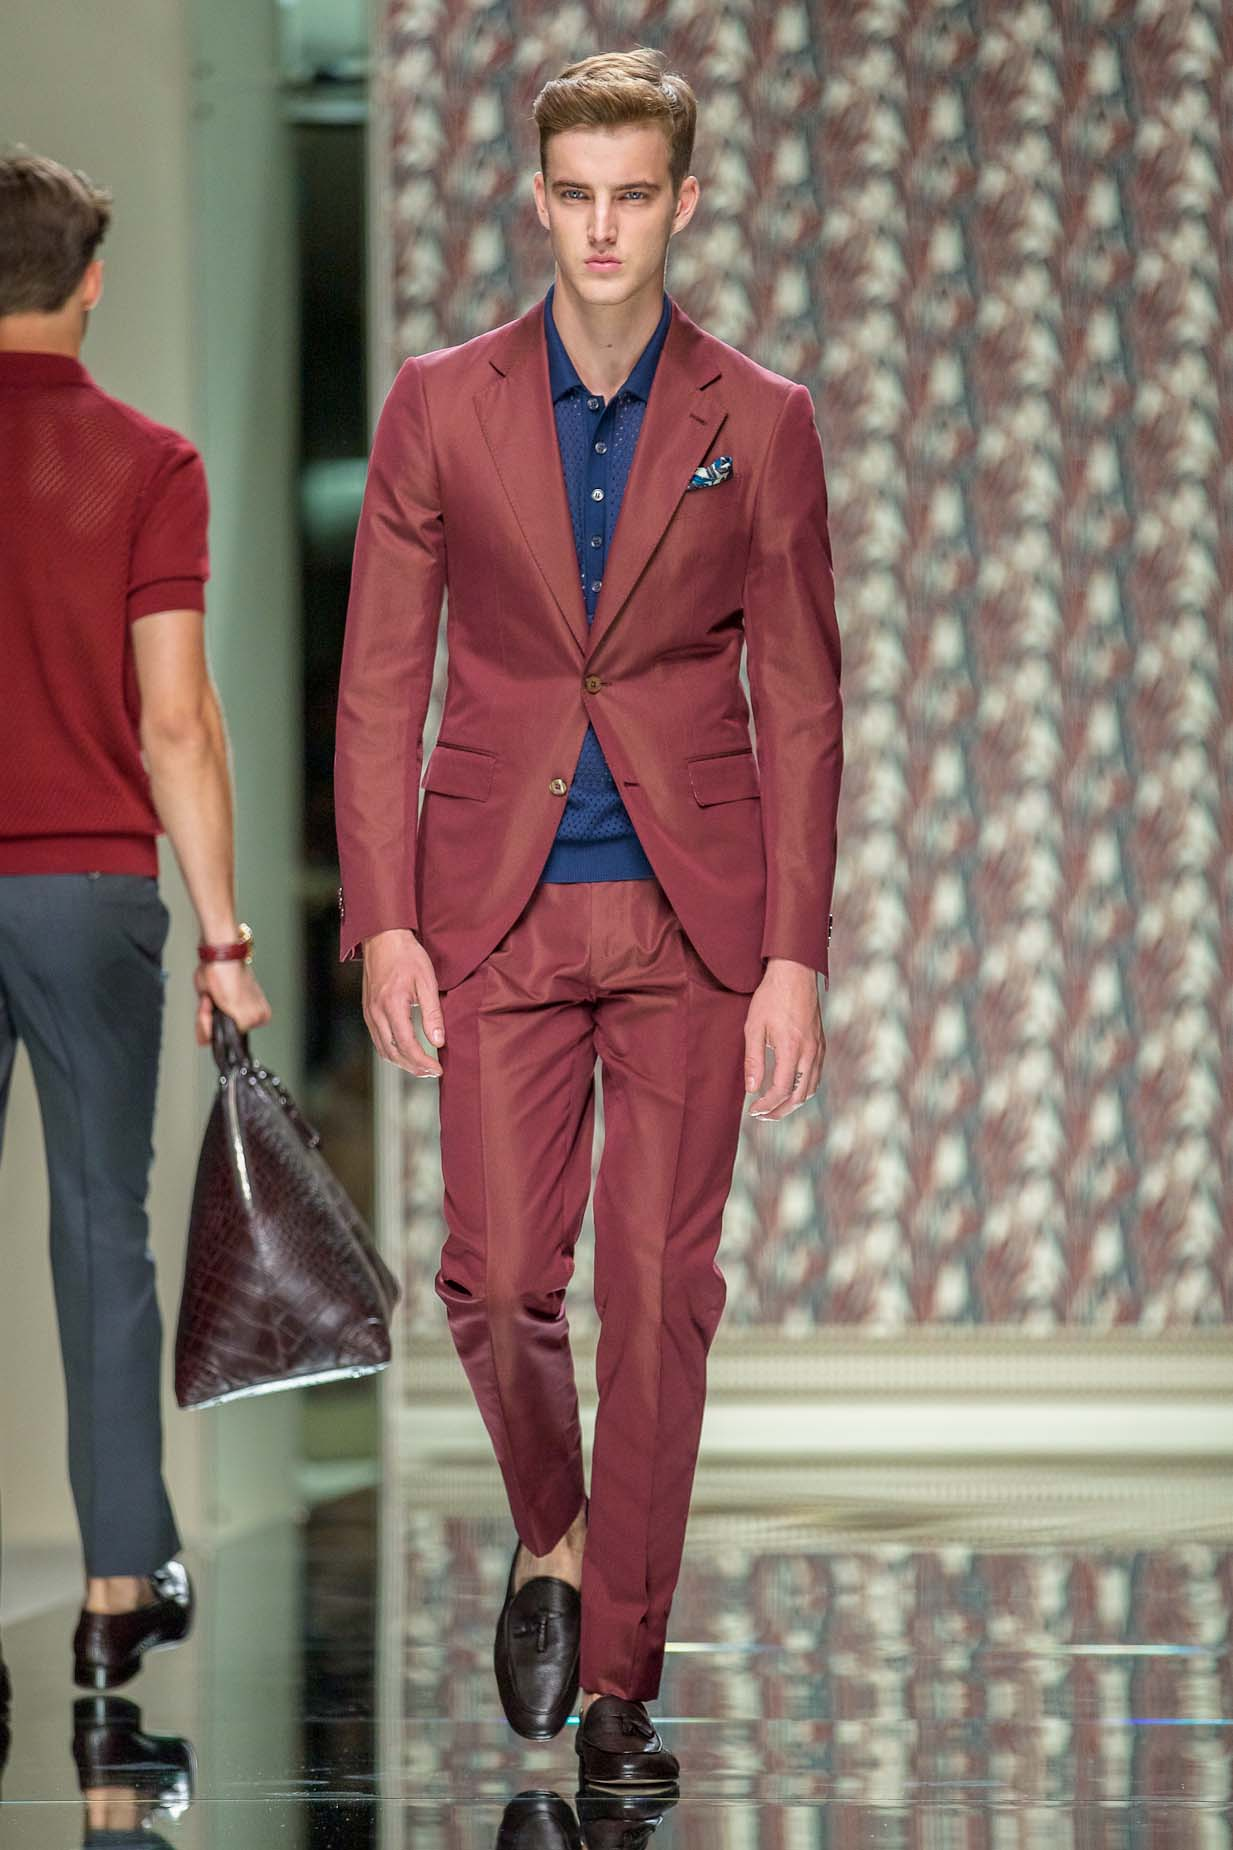 Spring Summer Fashion 2013 Menswear Trends